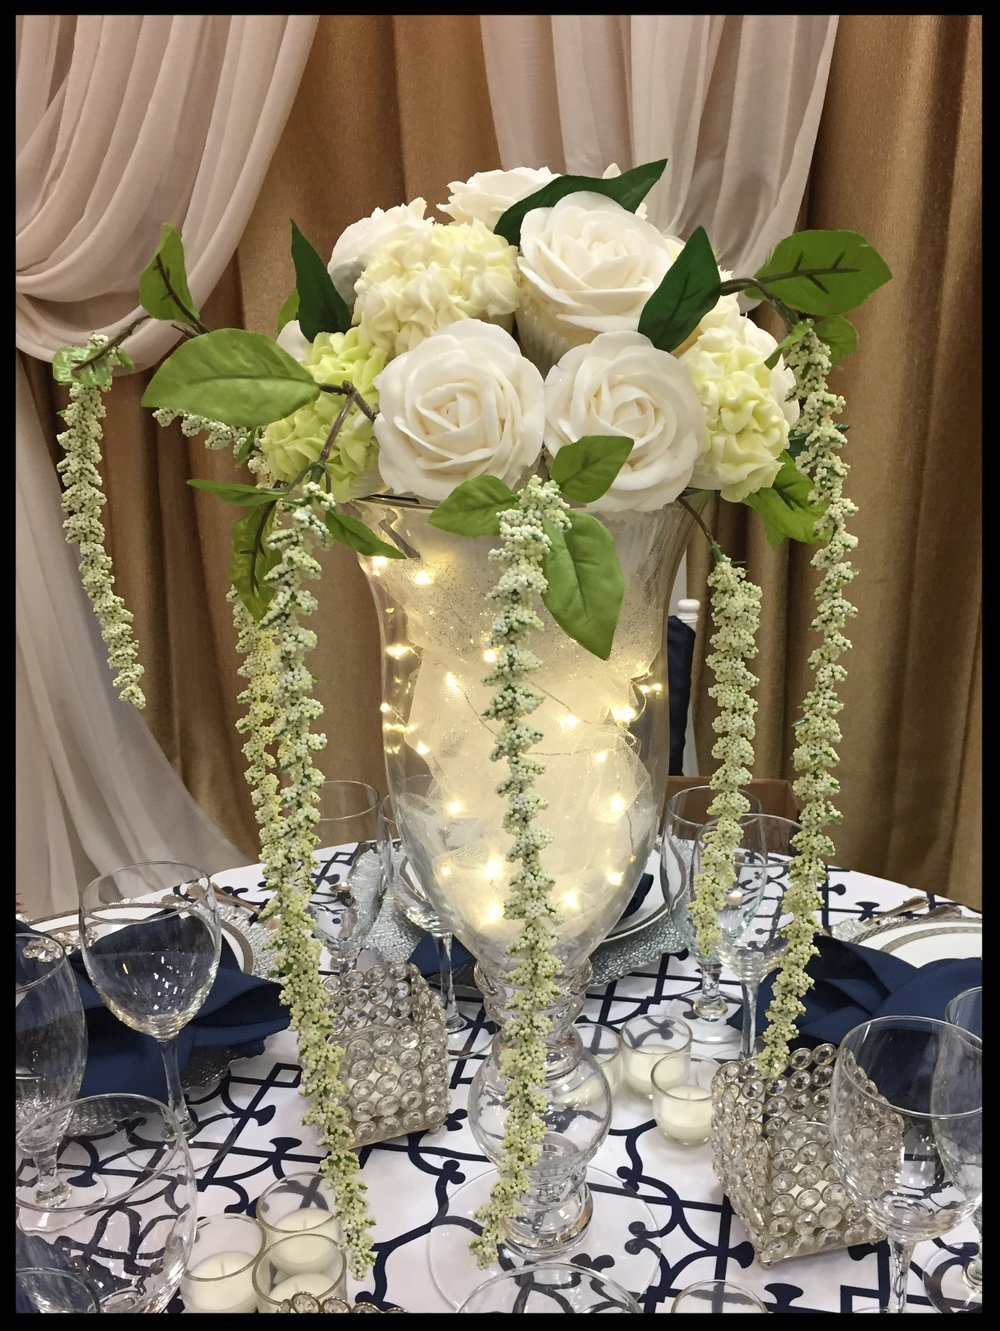 WEDDING TABLE CENTERPIECE - 18 cc